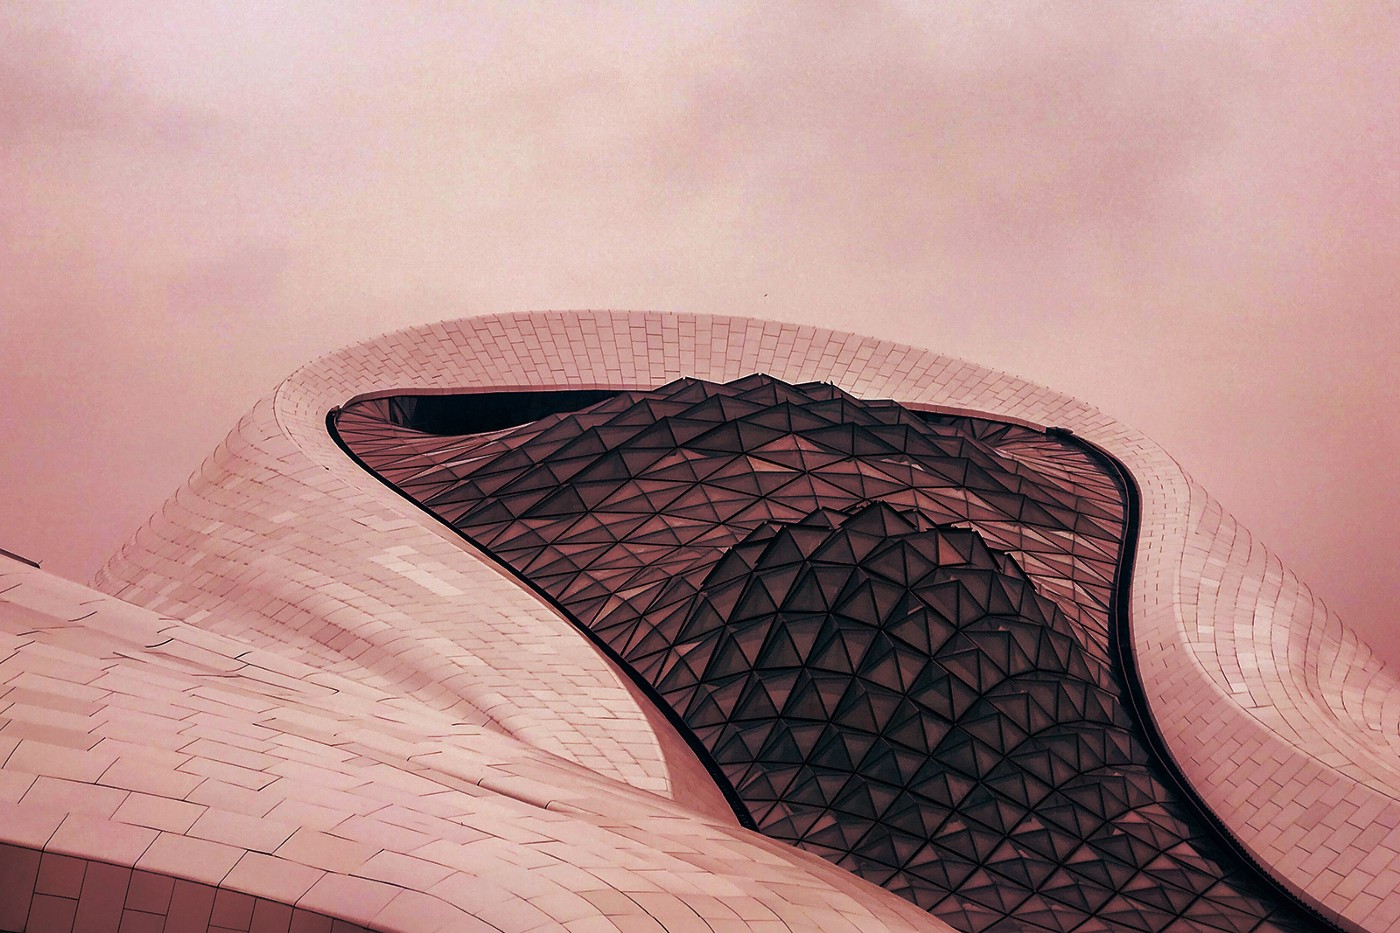 Close up of the Harbin Opera House overlaid with a red filter.